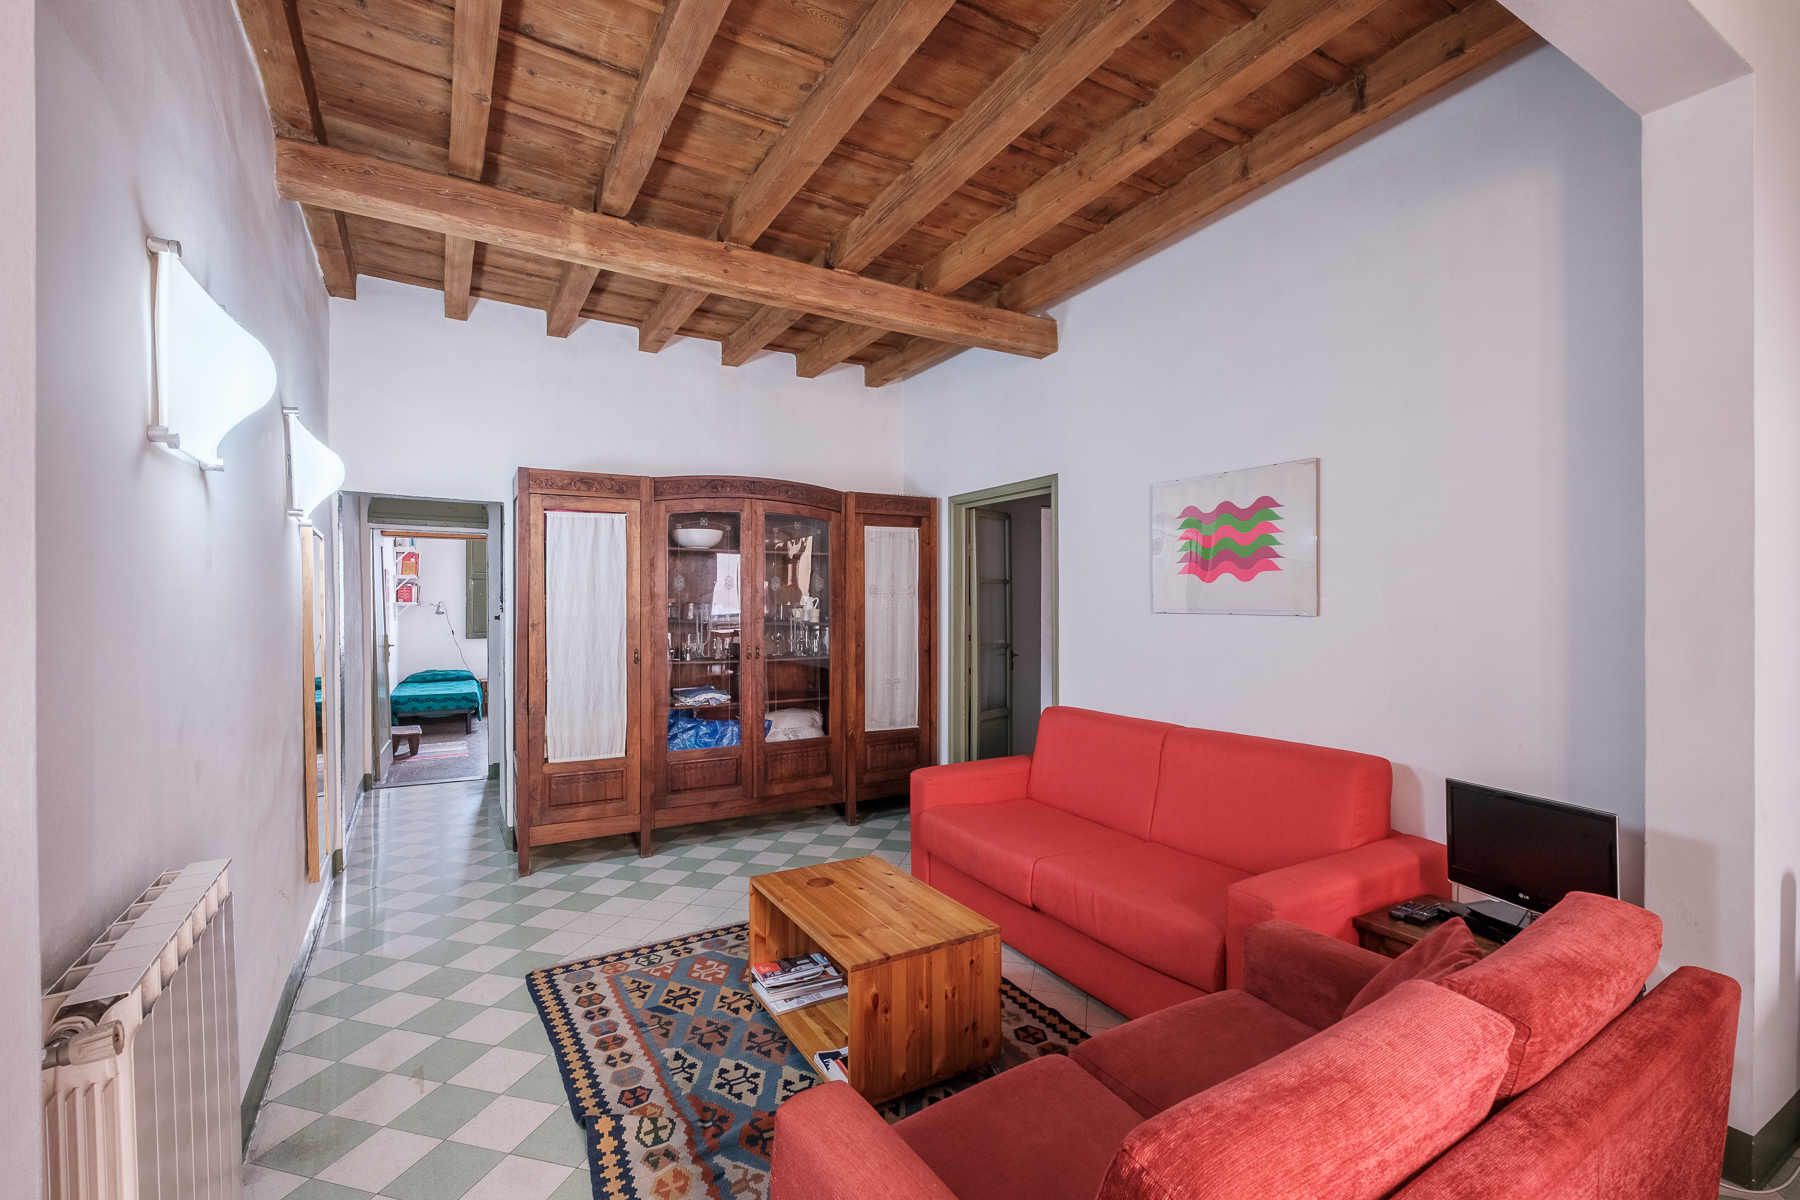 Apartment for Sale at Characteristic Apartment in Florence city center Via San Zanobi Firenze, Florence 50100 Italy